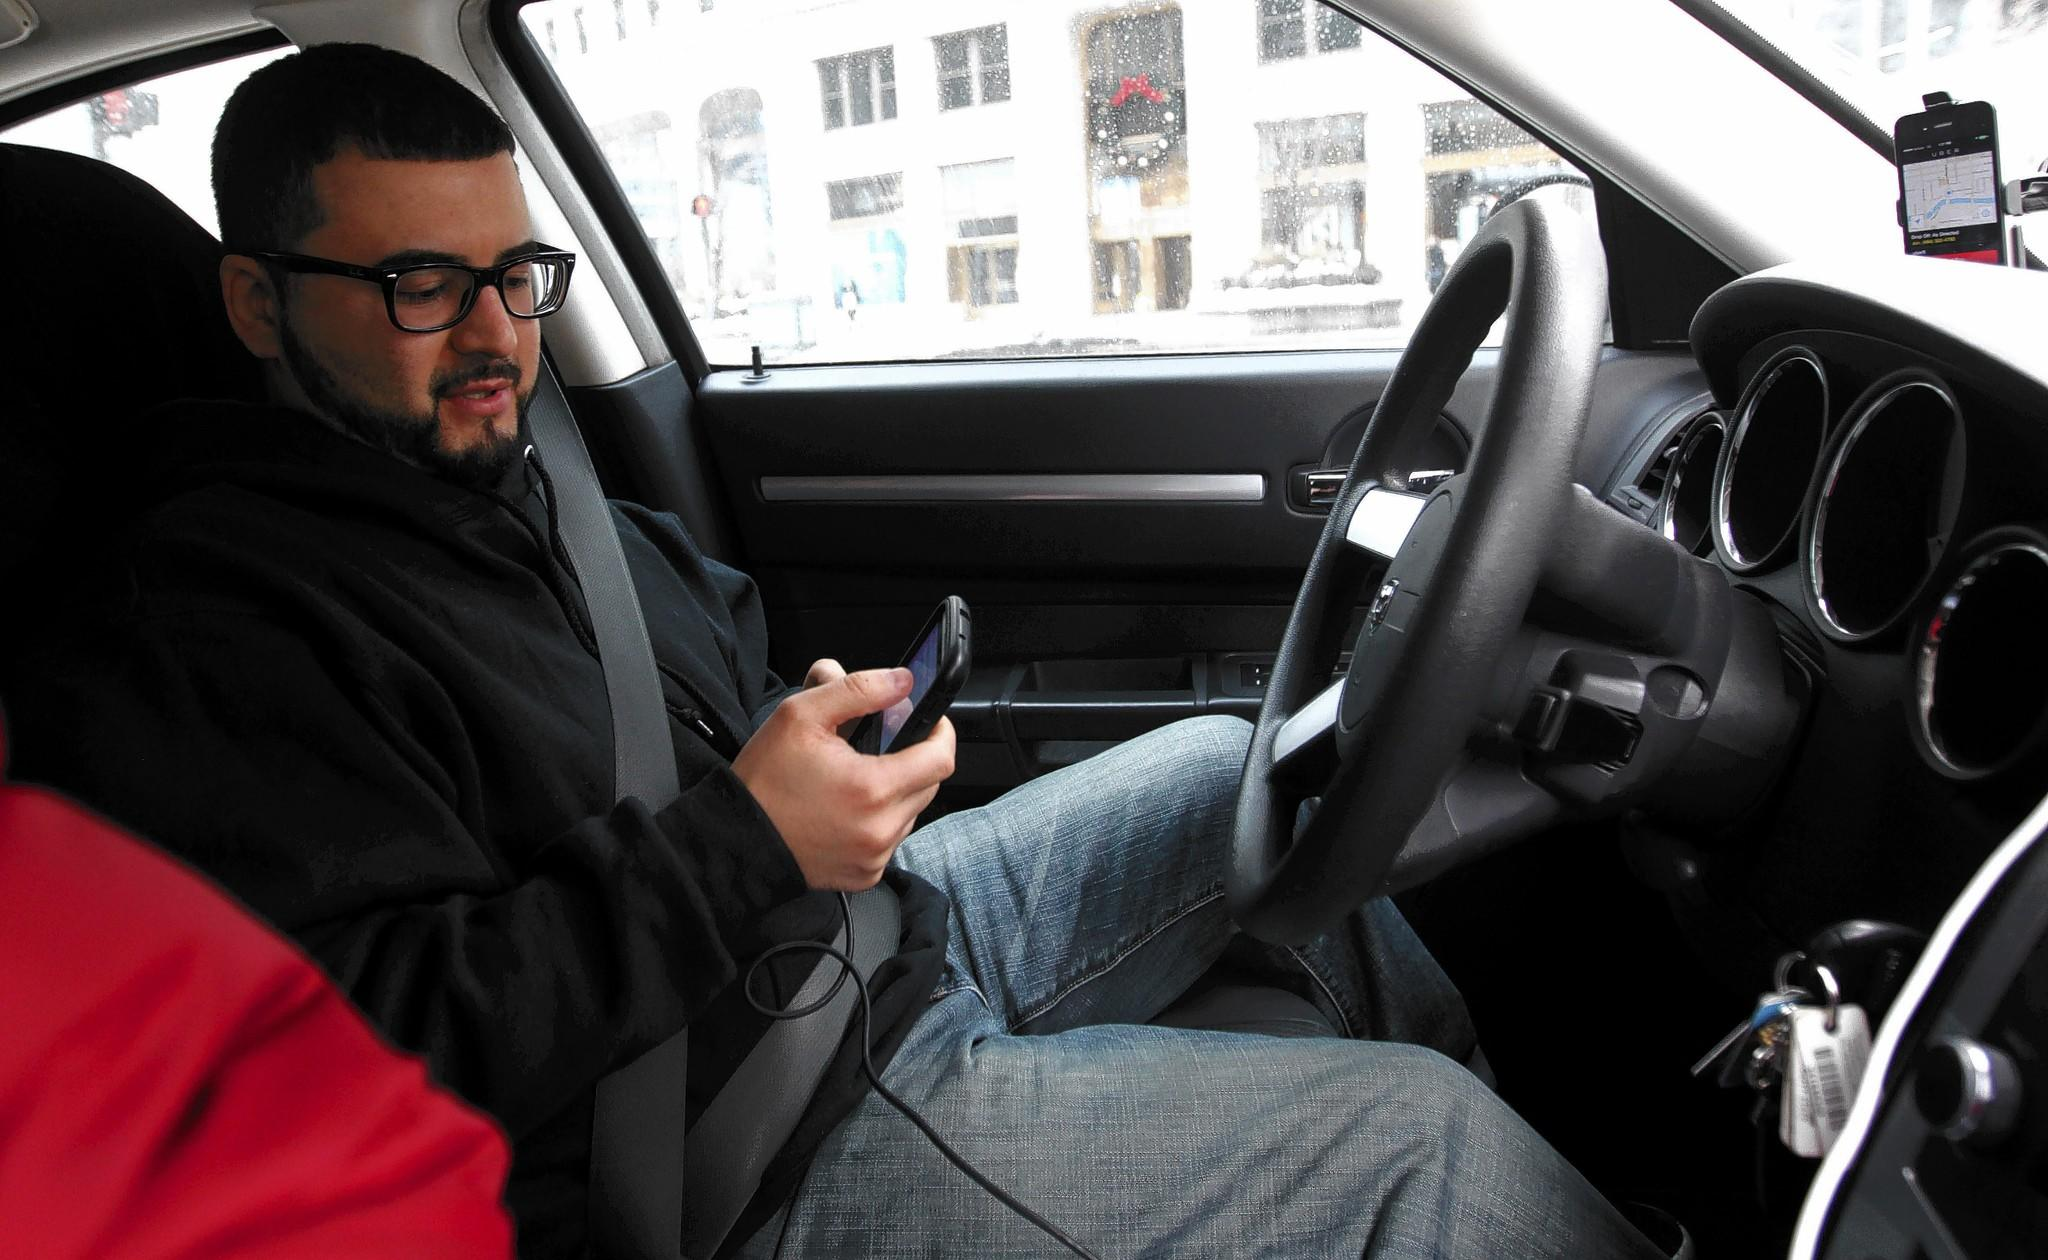 Bruno, an Uber X driver, says he's working toward being a chauffeur.